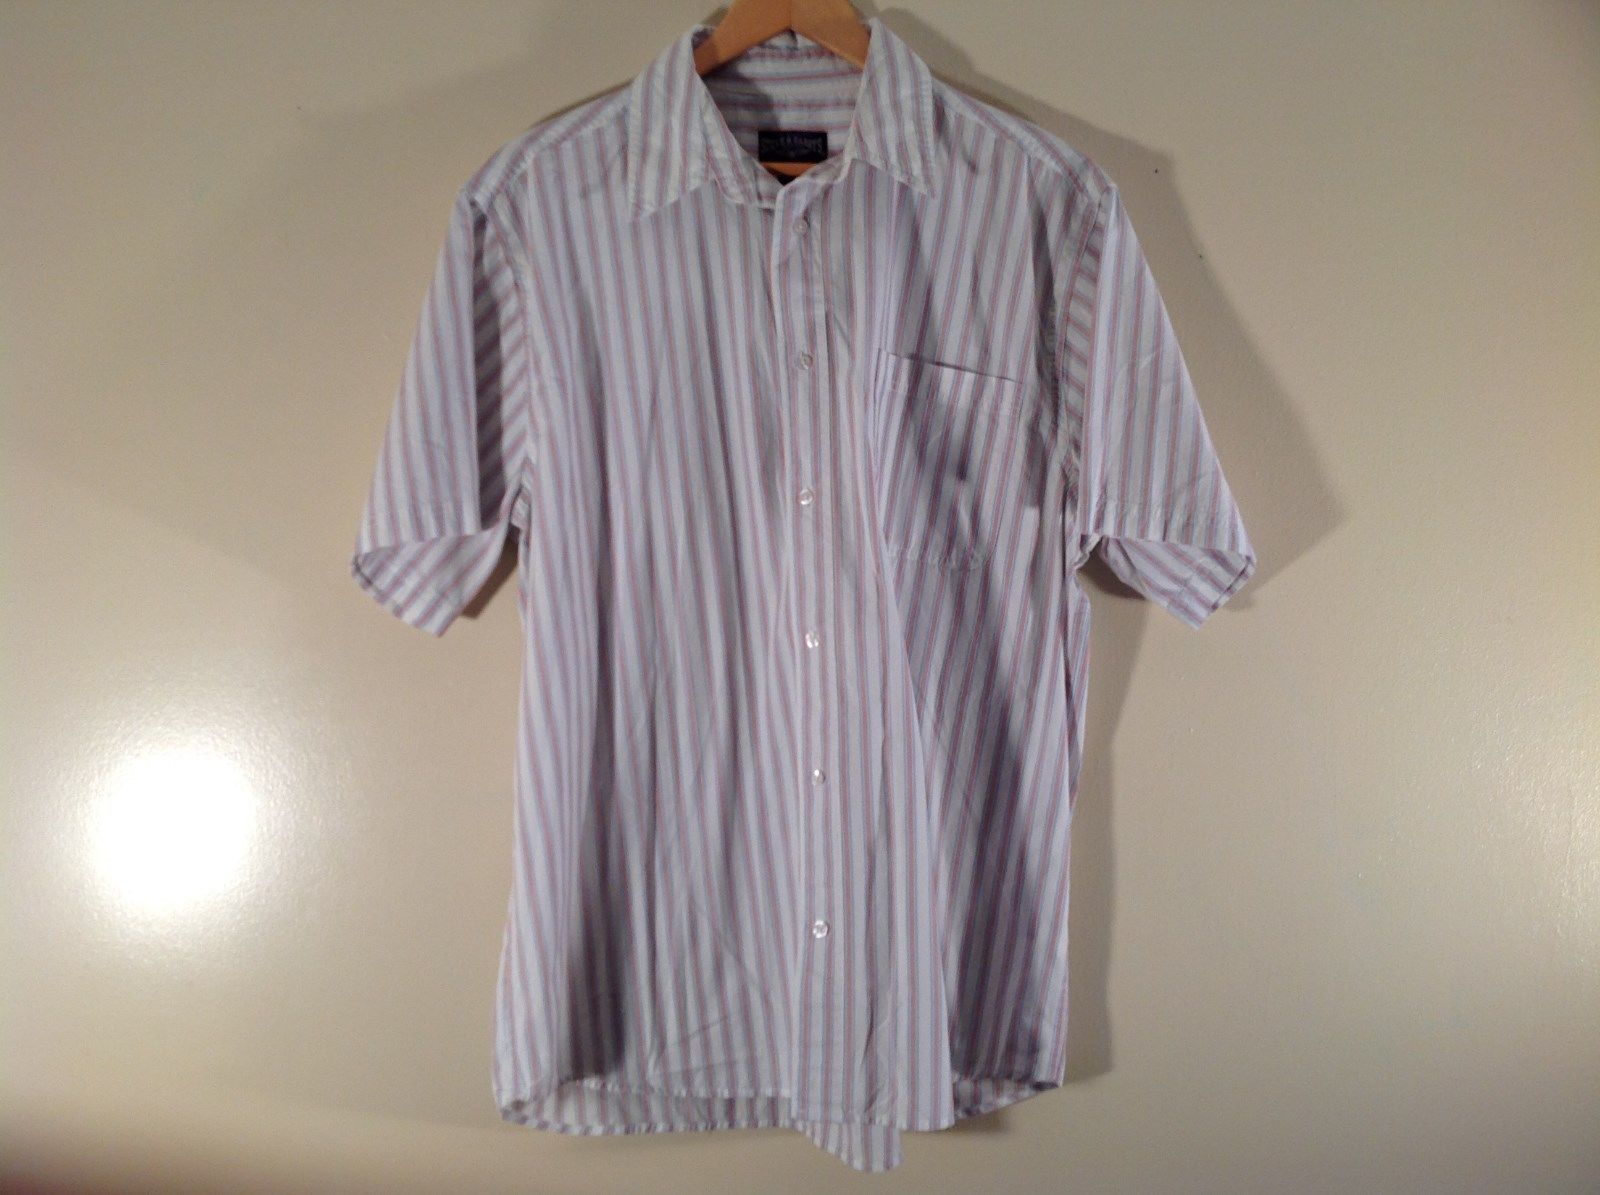 Steve and Barrys Relaxed Fit Short Sleeve Size XL Red White Blue Striped Shirt